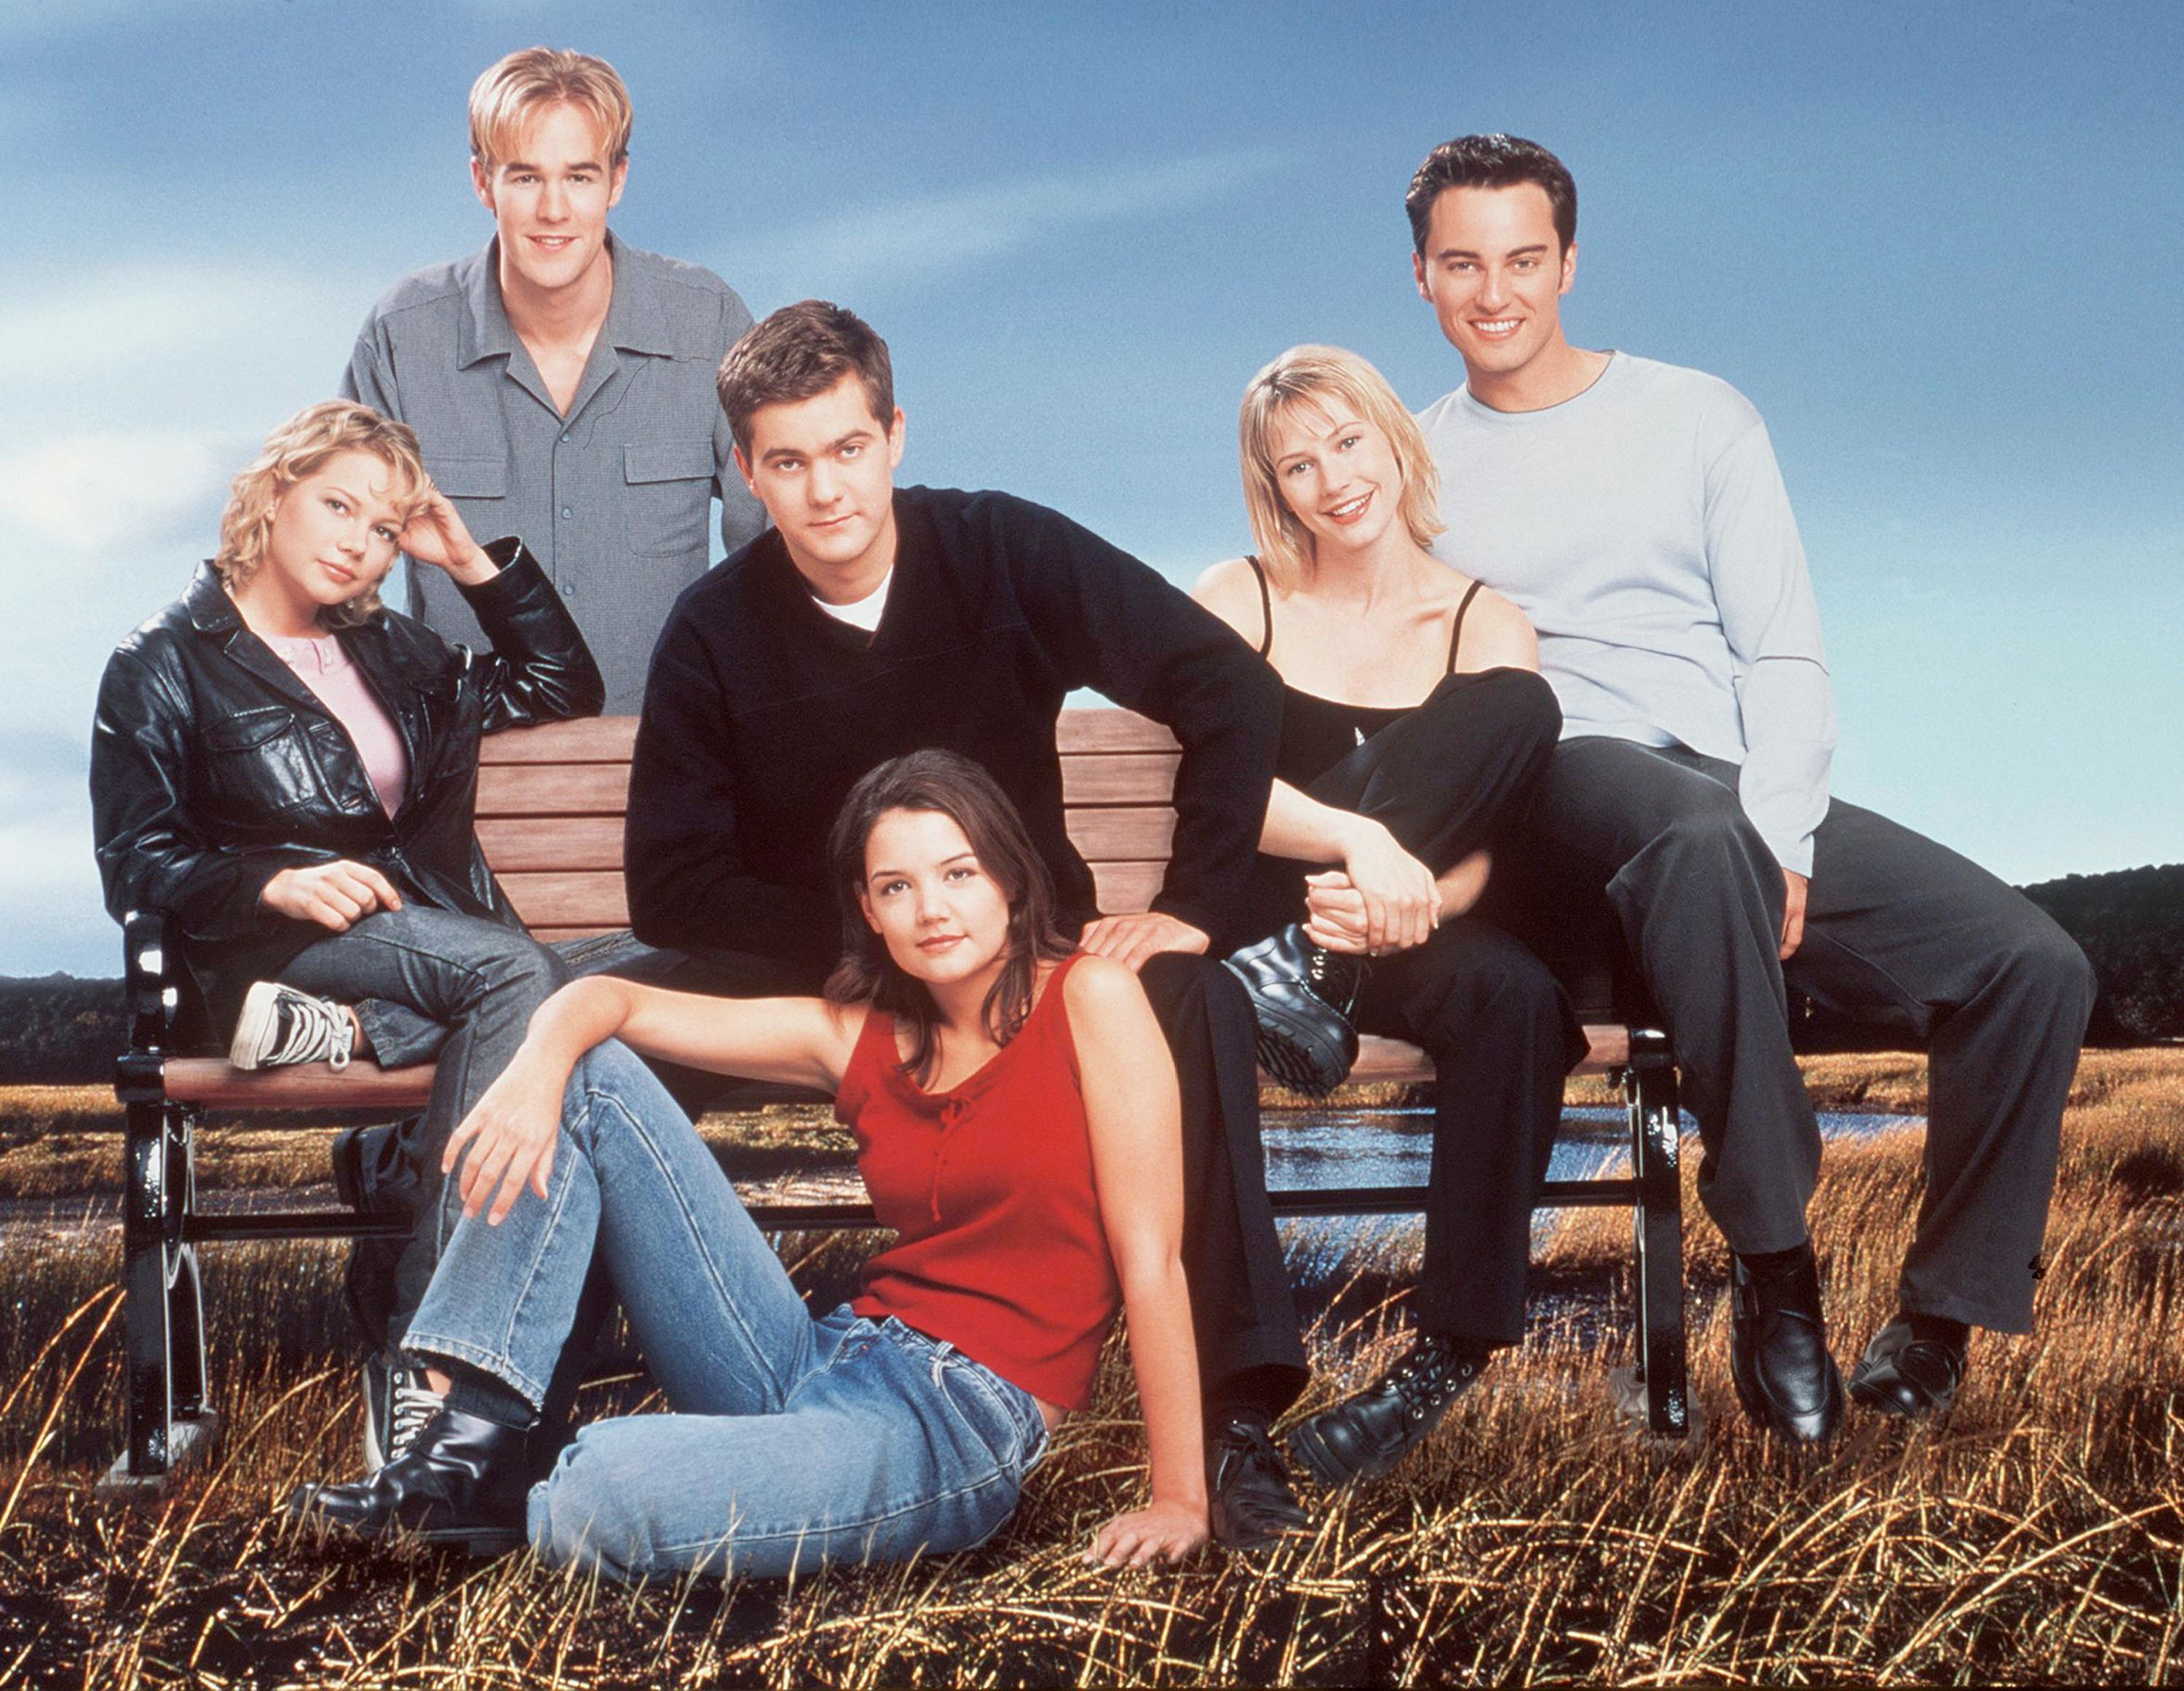 """The cast of television's """"Dawson's Creek"""" poses for a photo. James Van Der Beek stands in the back row. In the middle row from left to right are Michelle Williams, Joshua Jackson, Meredith Monroe and Kerr Smith. Katie Holmes sits in front.   Getty Images"""